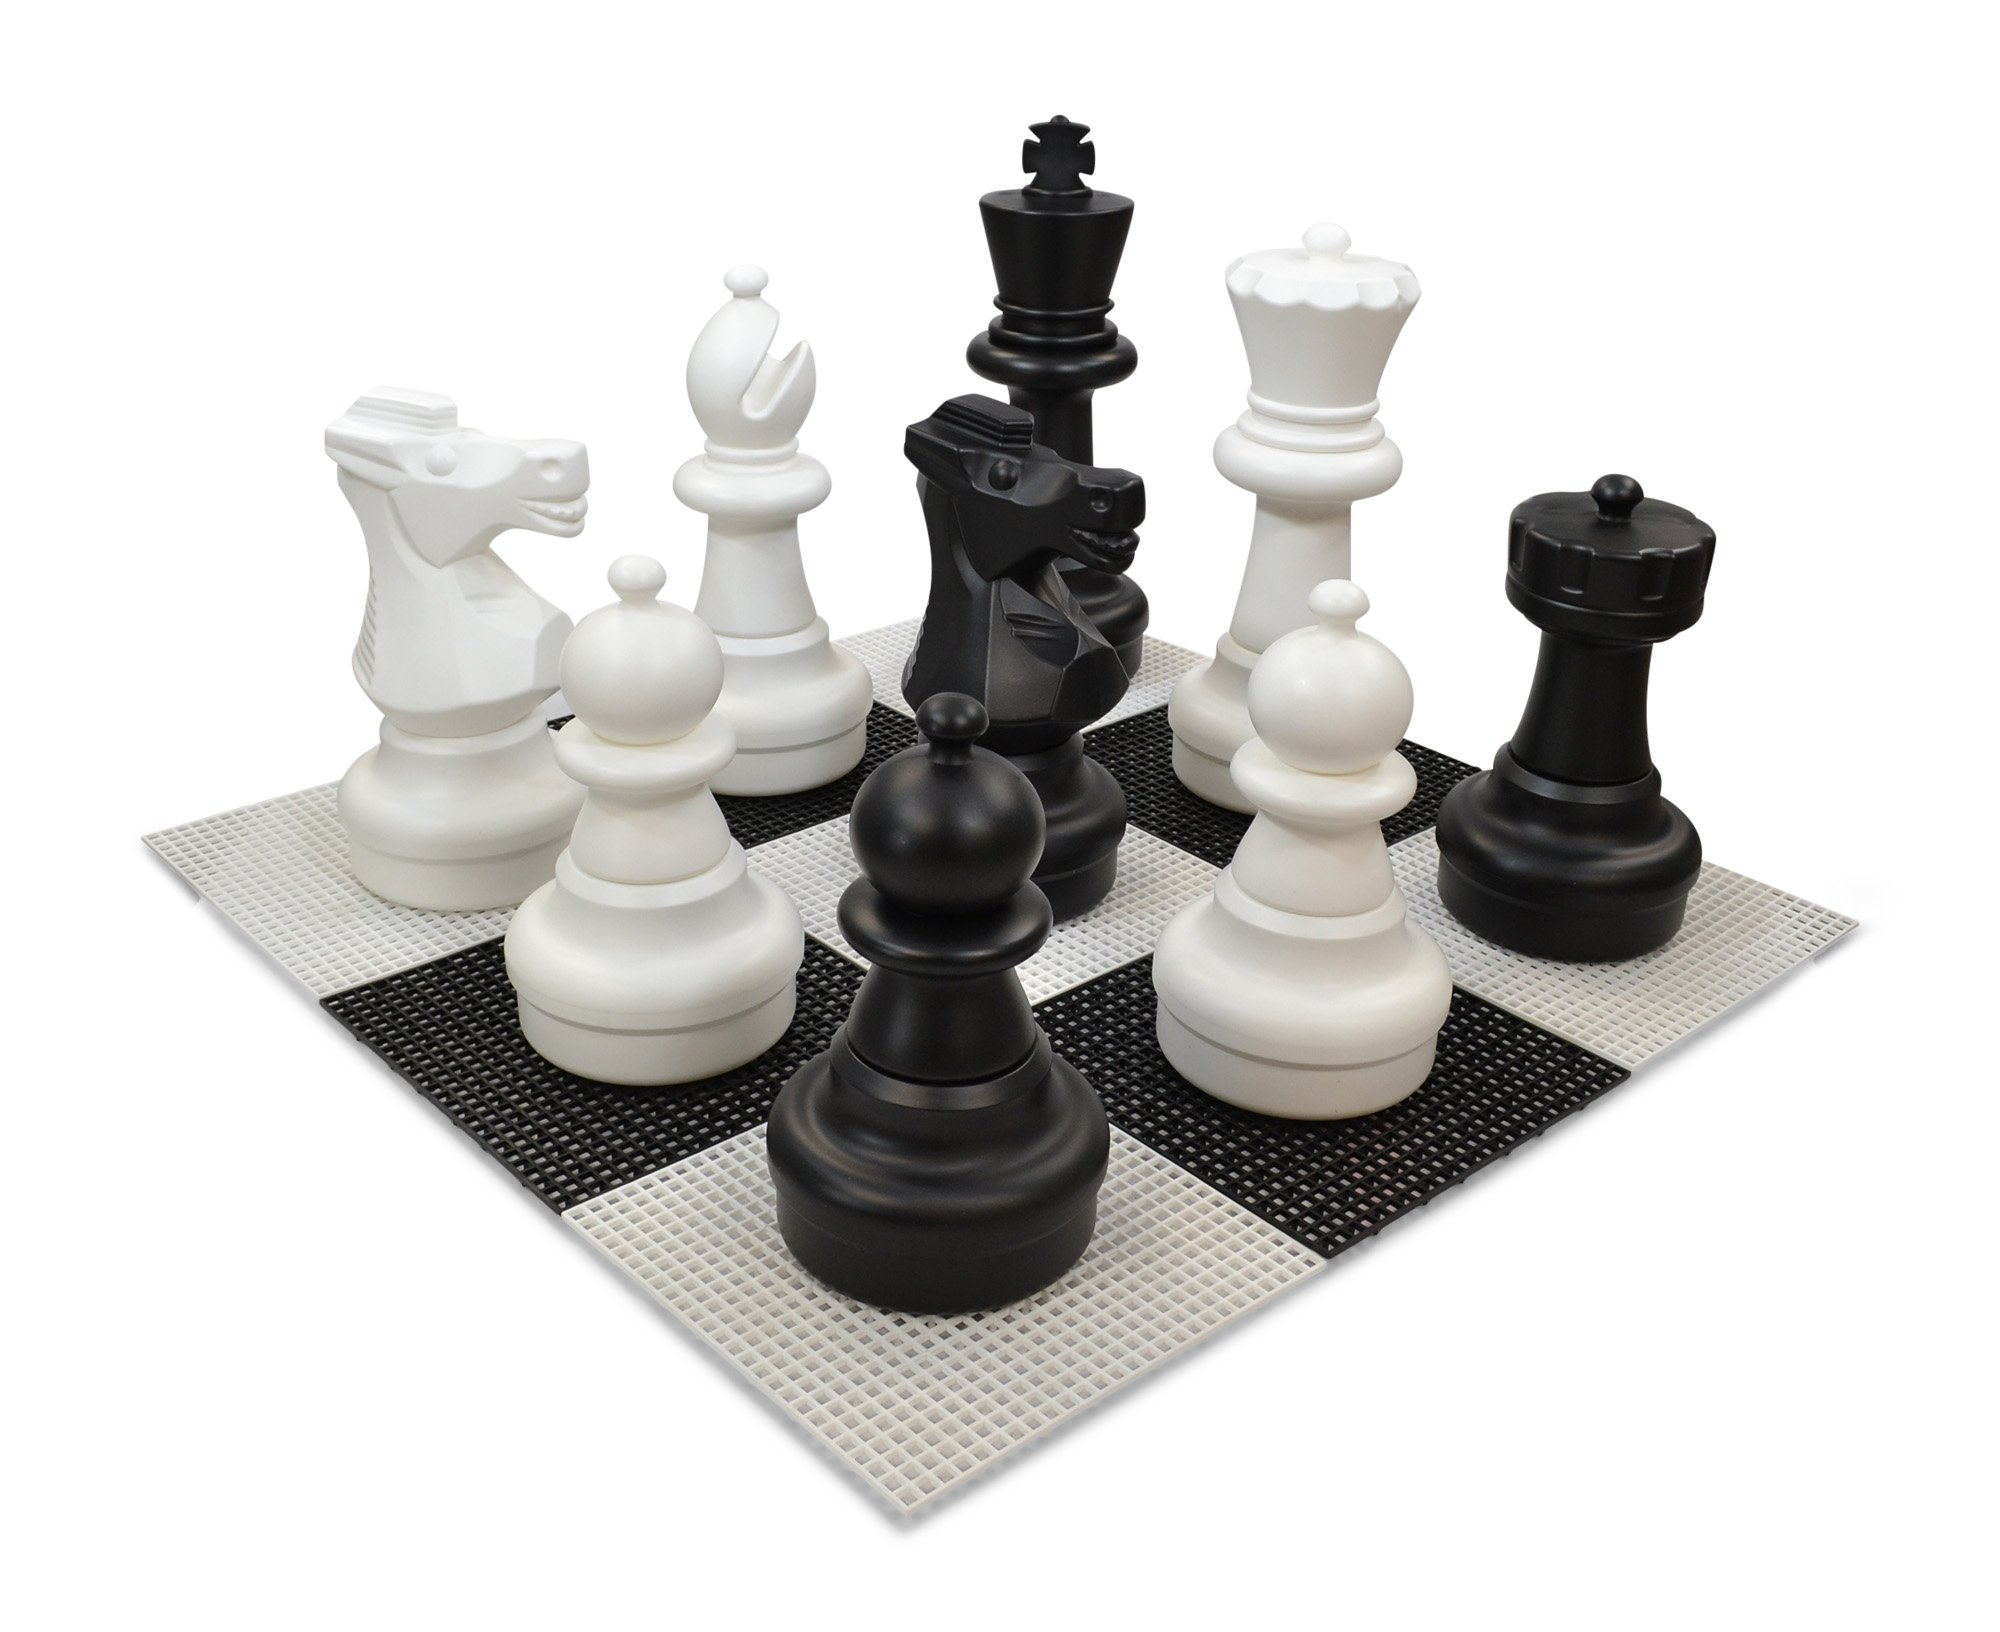 MegaChess 25 inch Tall Complete Giant Plastic Chess Set with 10 Foot x 10 Foot Giant Plastic Board